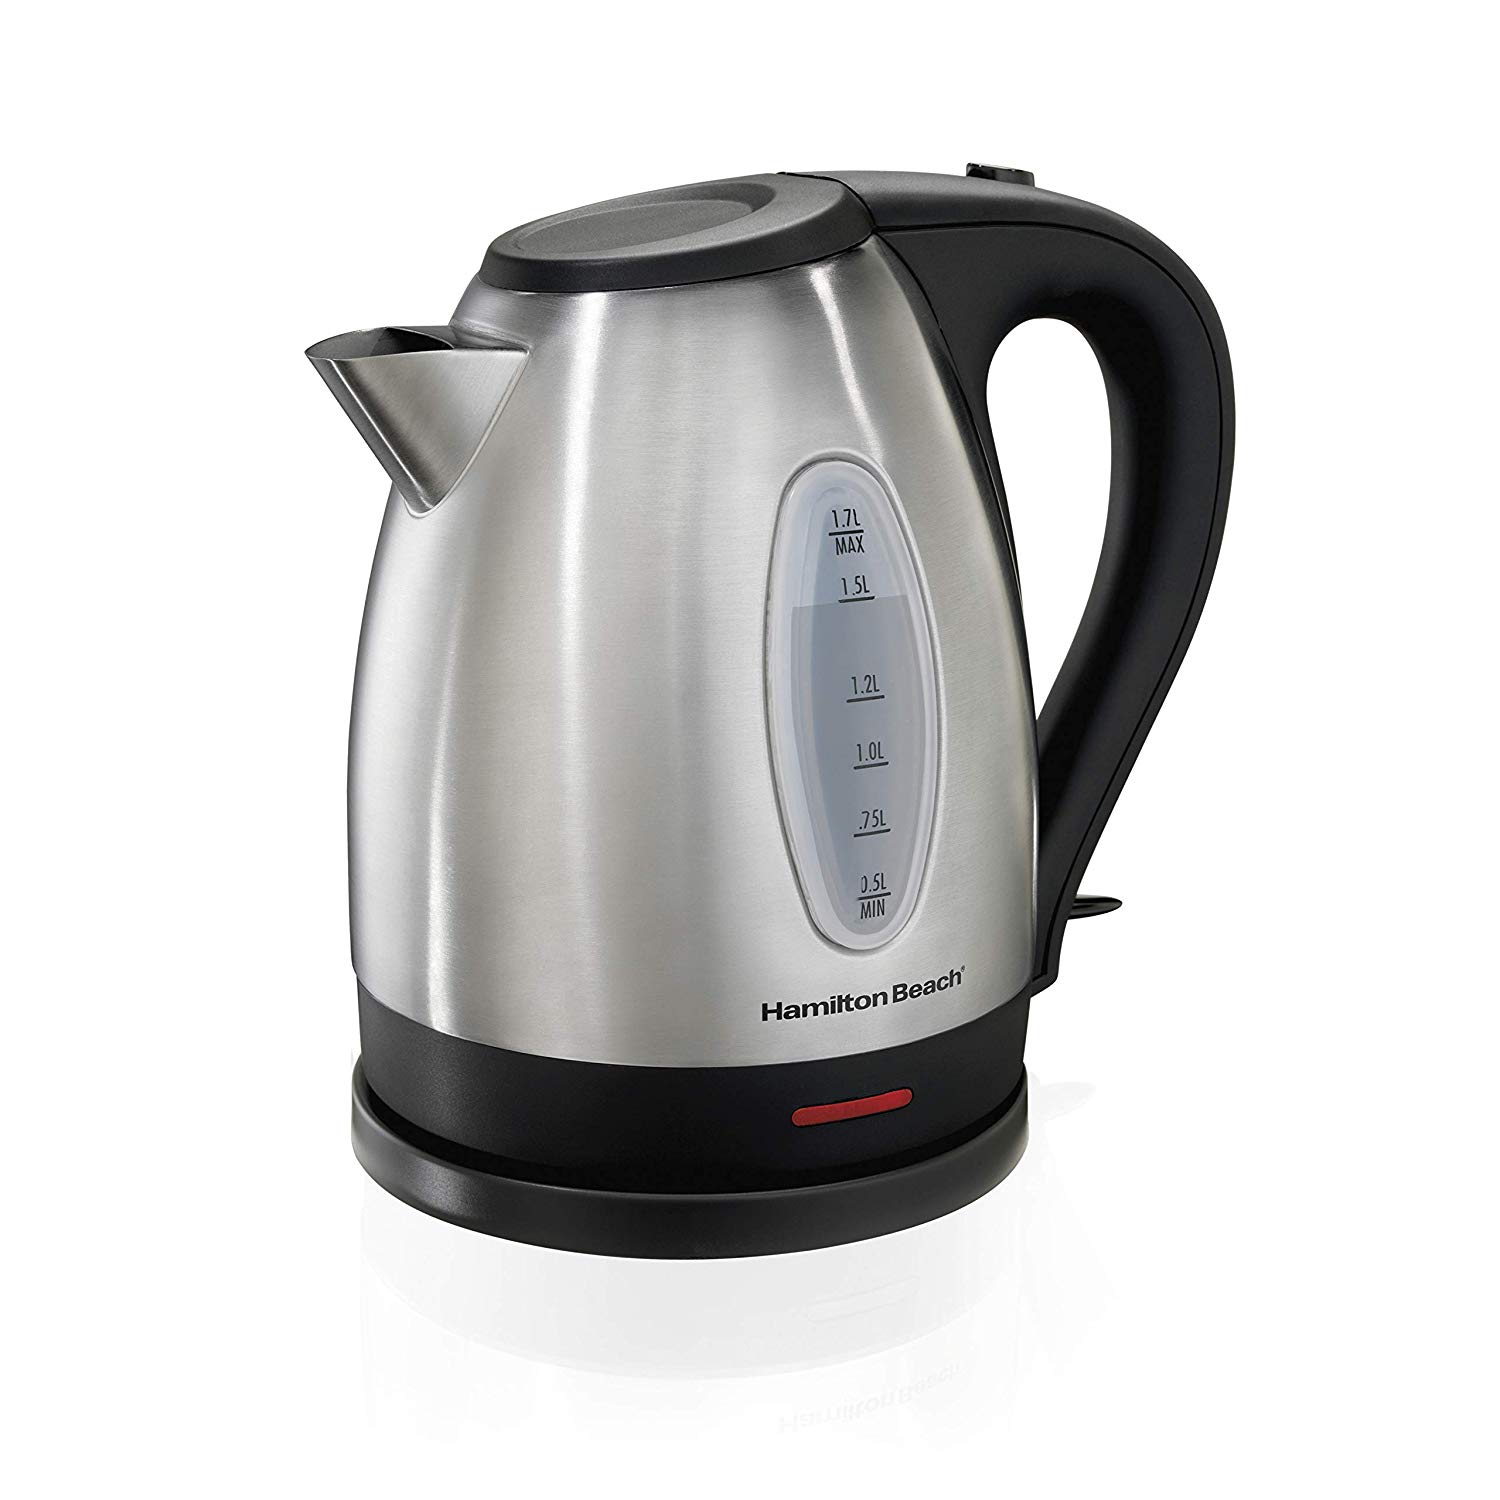 Hamilton Beach Electric Tea Kettle Automatic Shut Off